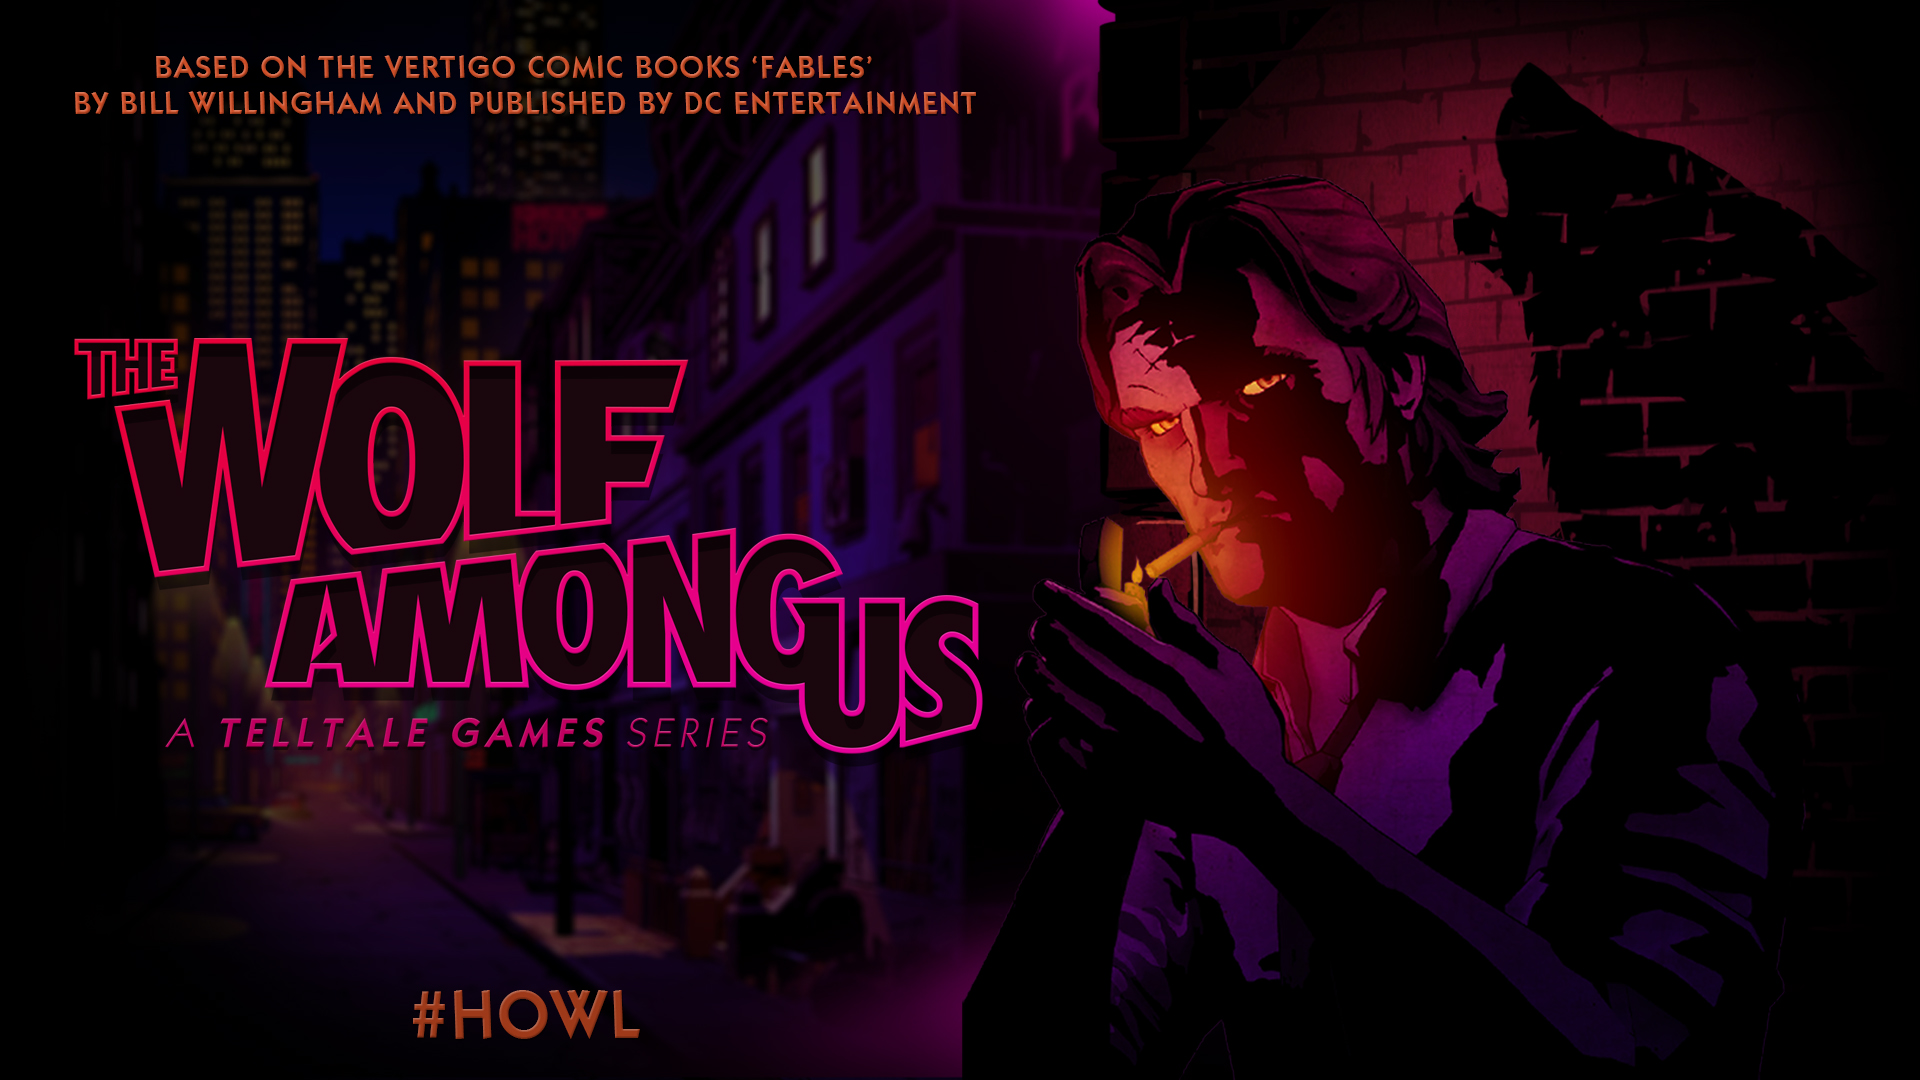 Trailer for The Wolf Among Us